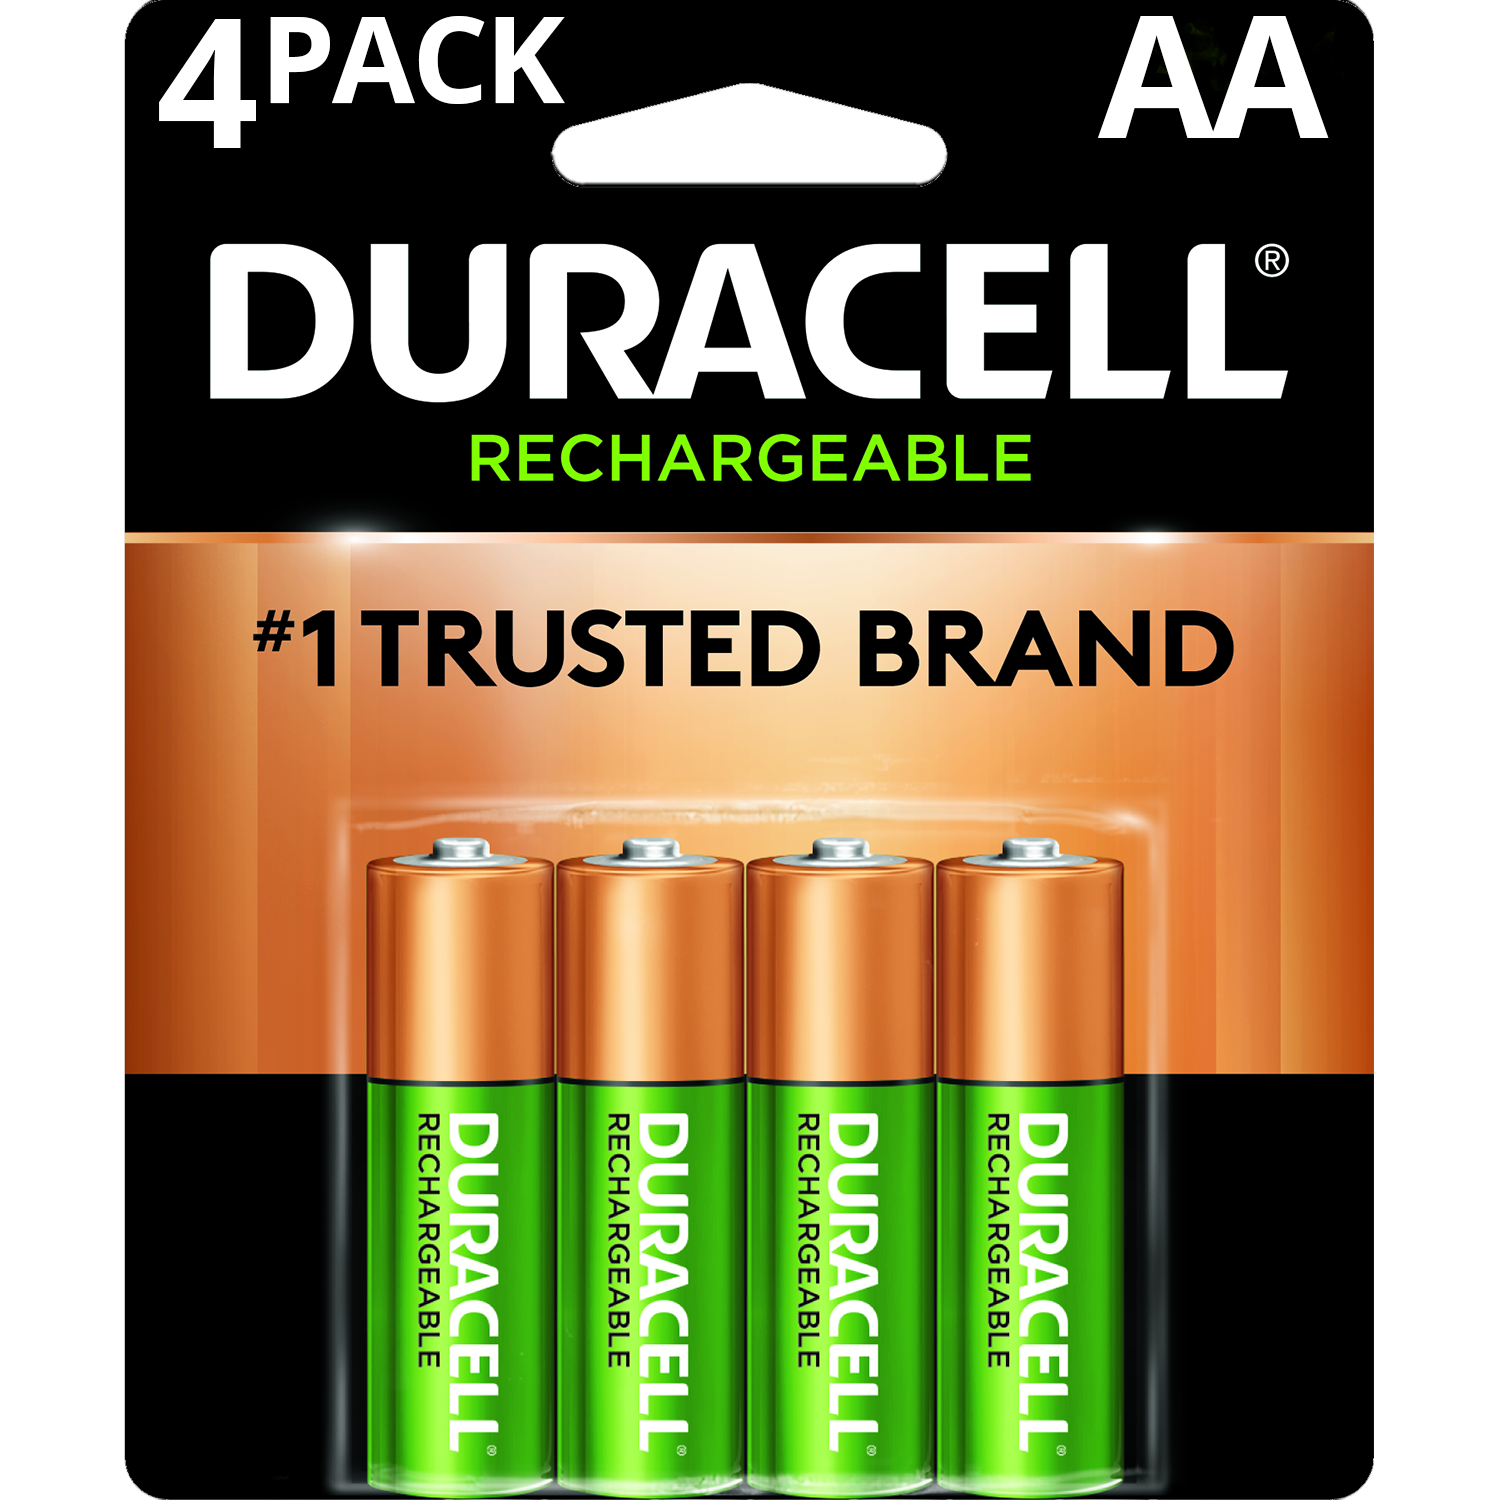 Duracell 1.5V Rechargeable Alkaline AA Batteries 4 Pack